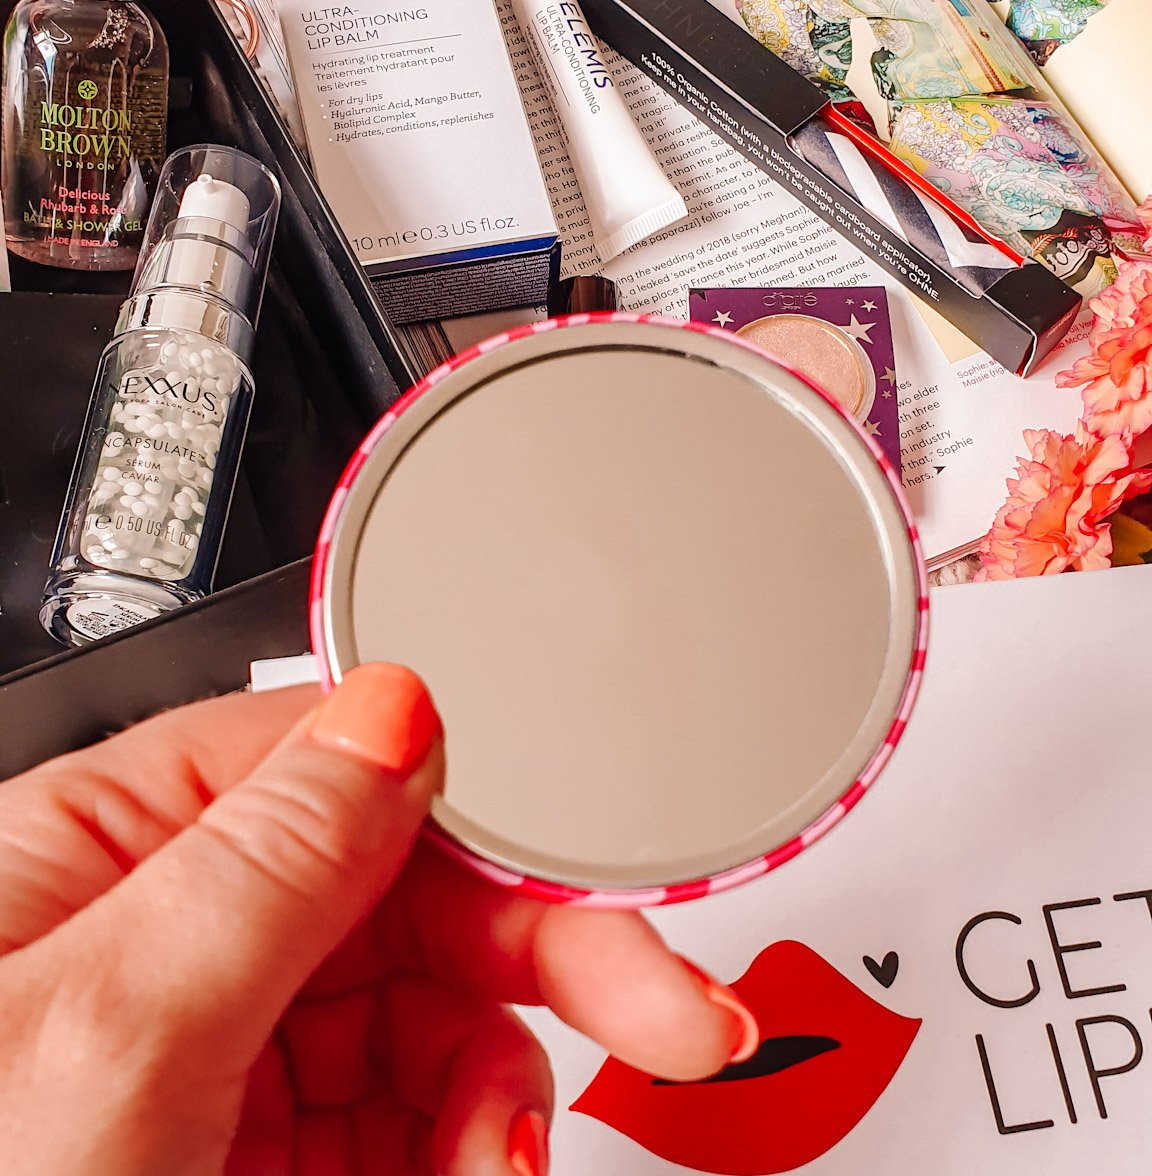 TOTM 'Be Kinder To Your Vagina' Compact Mirror